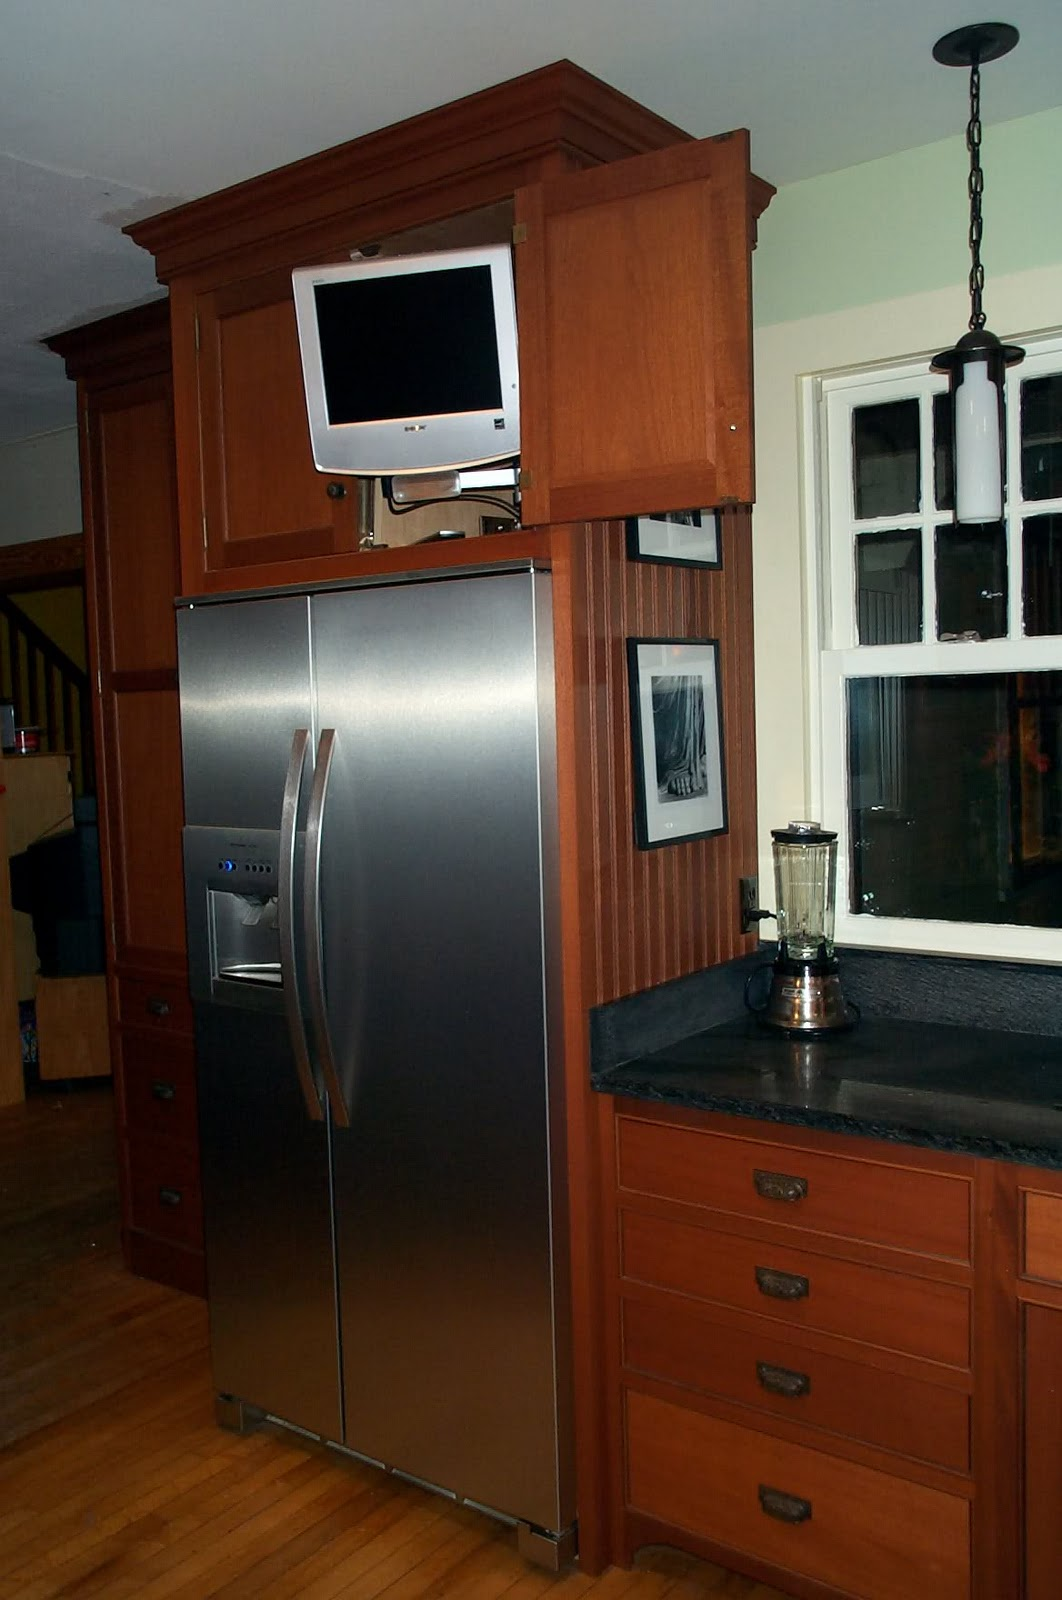 Kitchen Cabinets Around Refrigerator Cabinets Over The Refrigerator In My Hummel Opinion